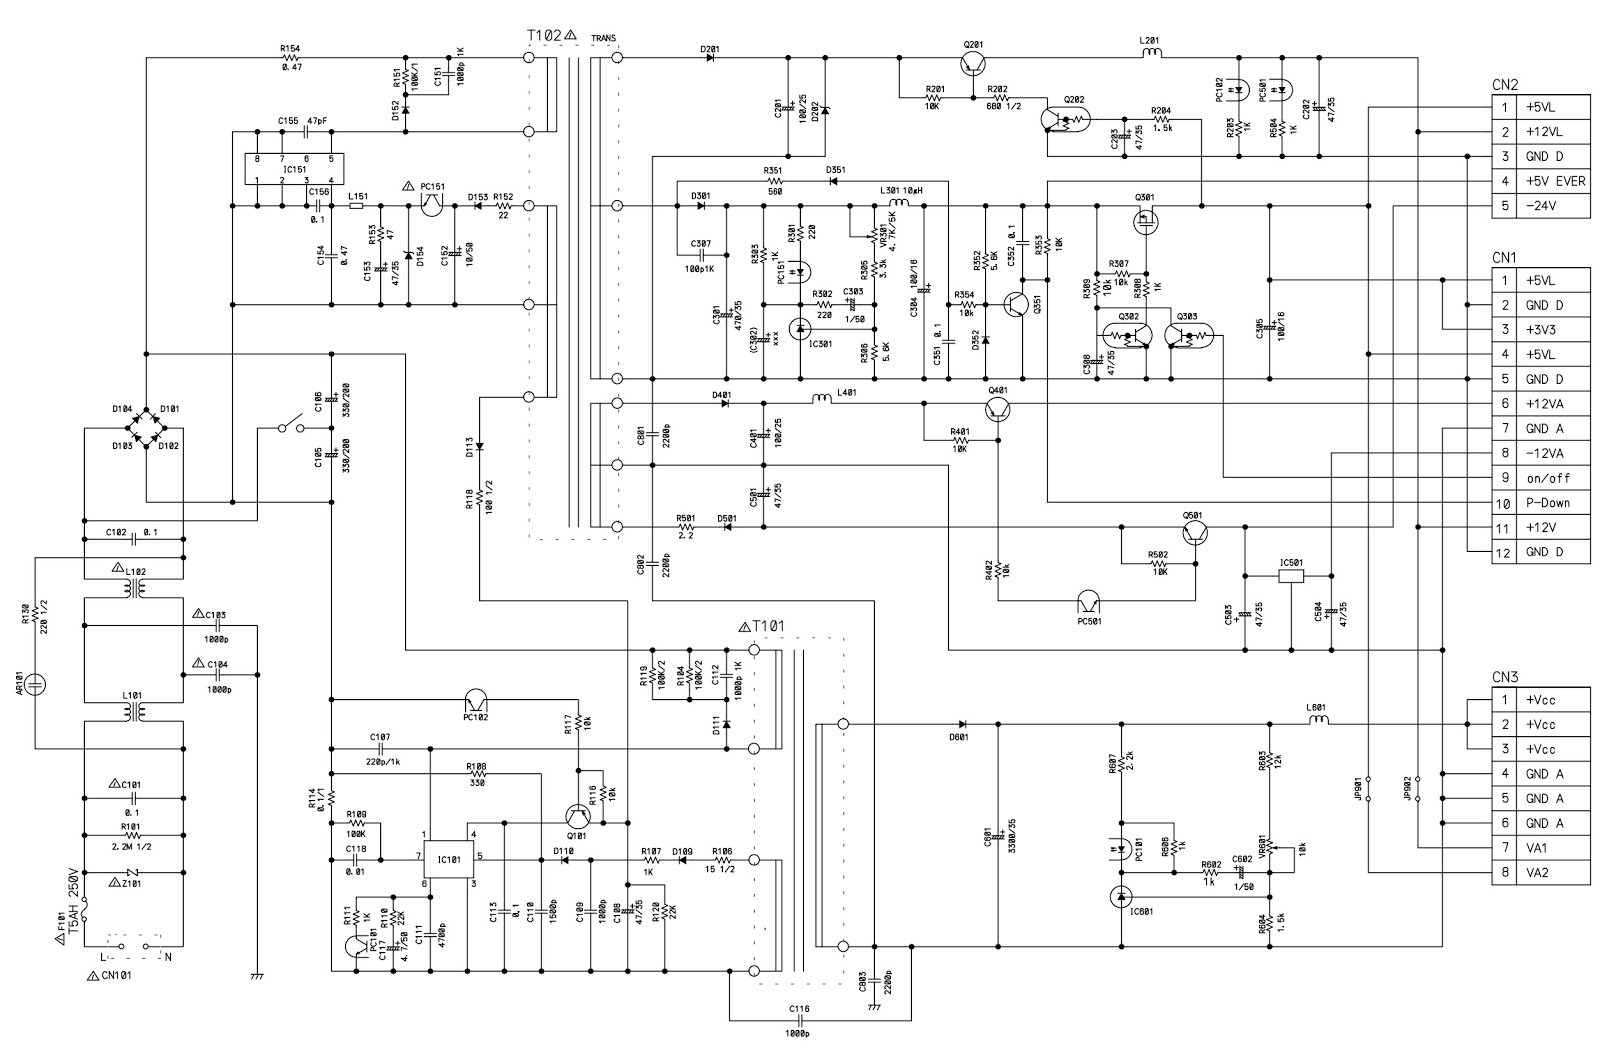 Philips Hts3105mki Hts3105mkii Smps And Main Amplifier Circuit Diagram